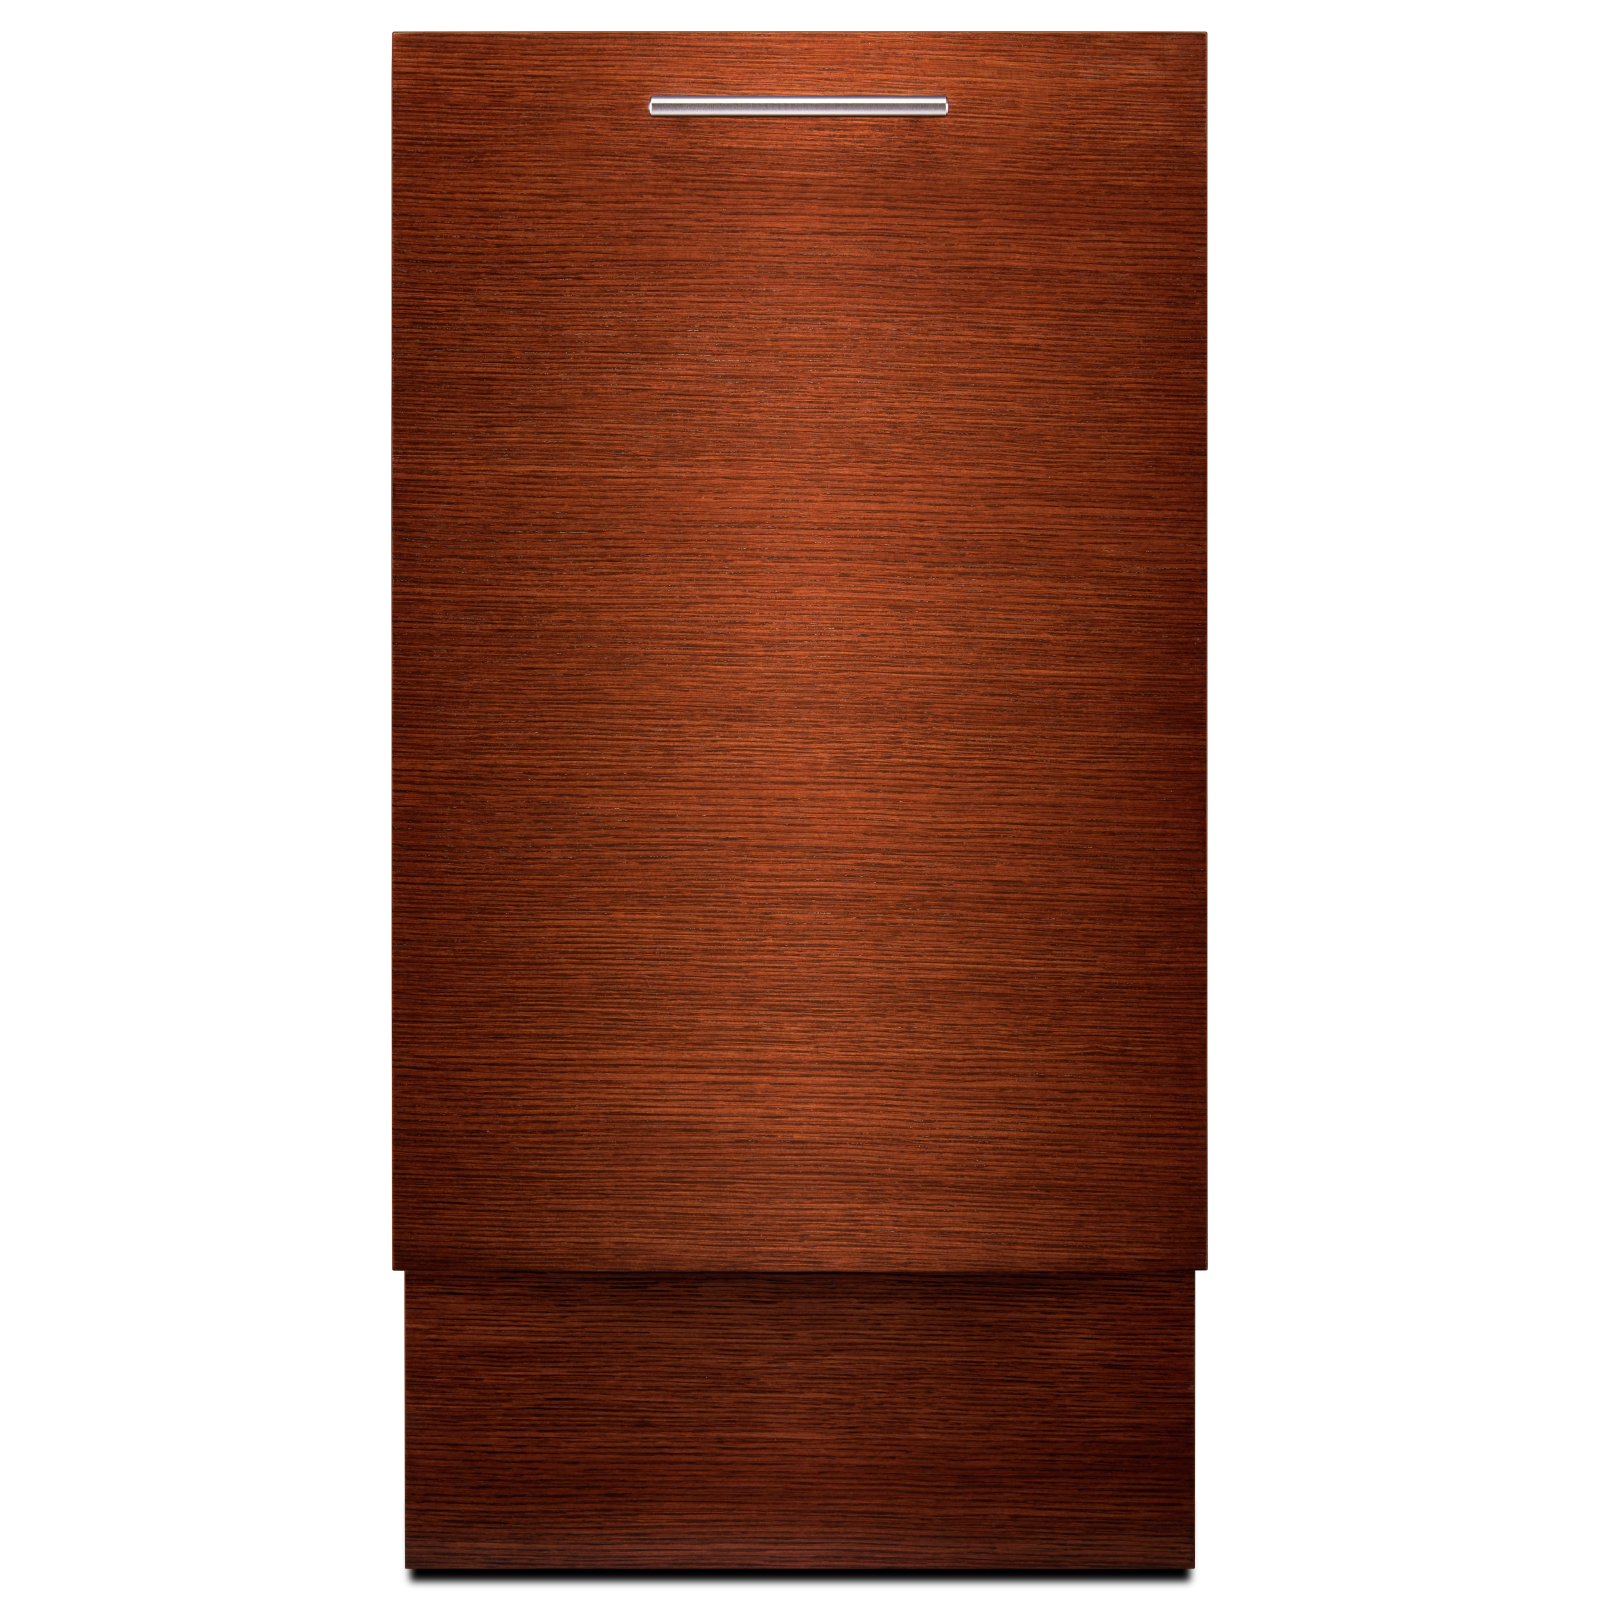 Jenn-Air Dishwasher in Pannel-Ready color showcased by Corbeil Electro Store